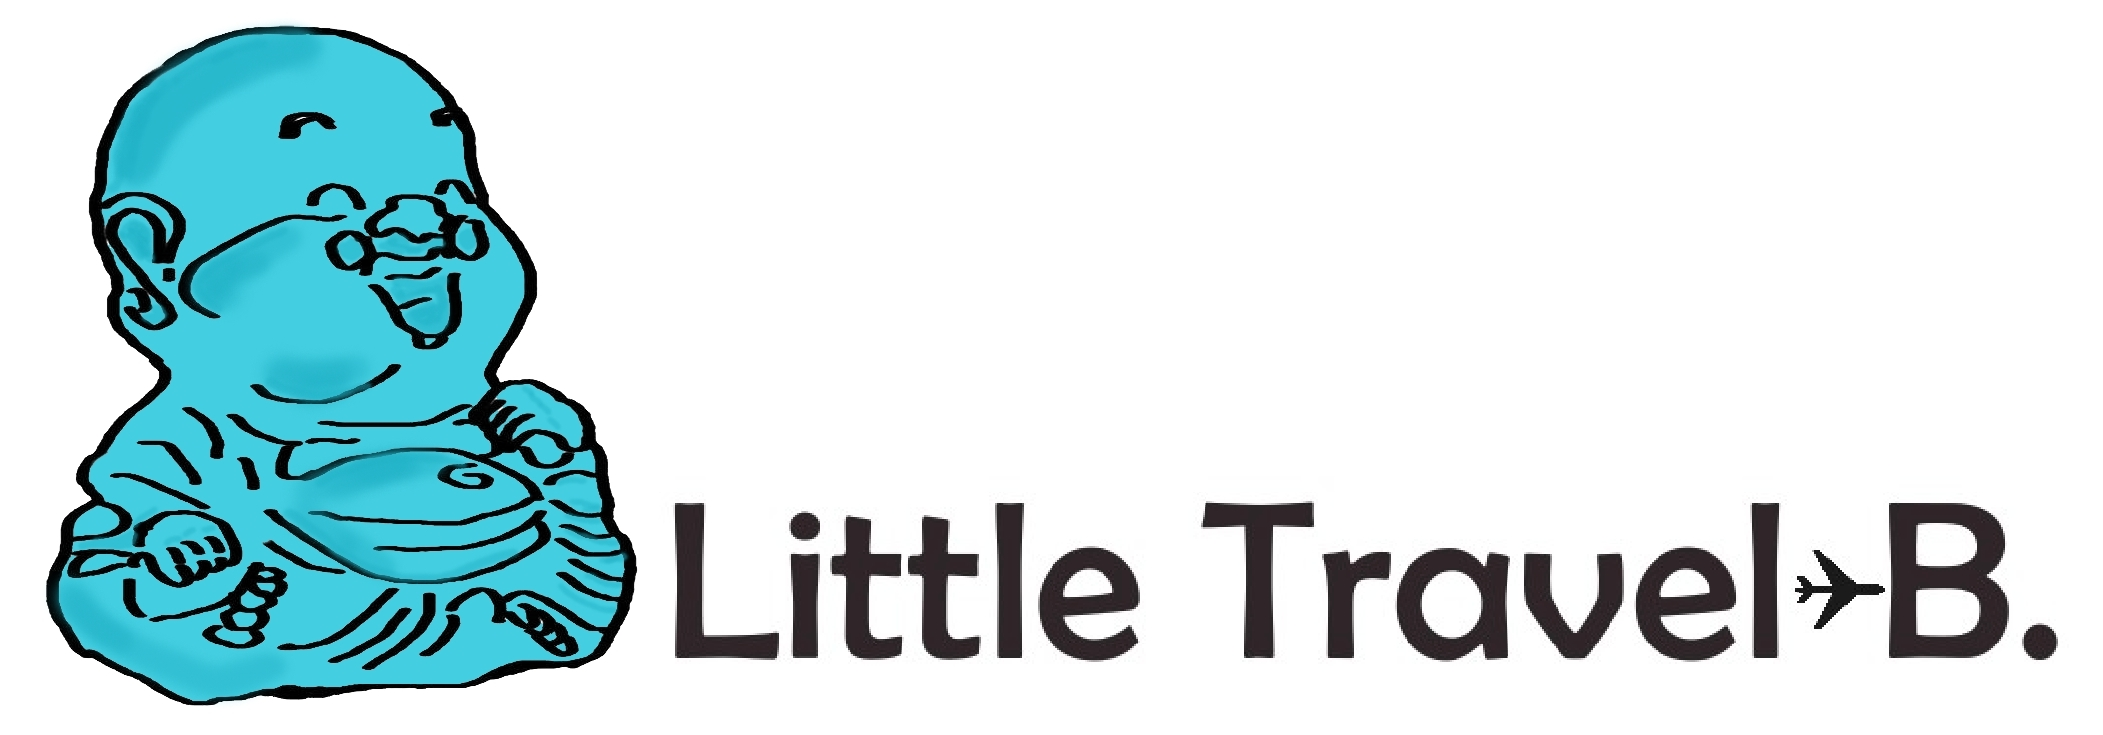 Little Travel-B.